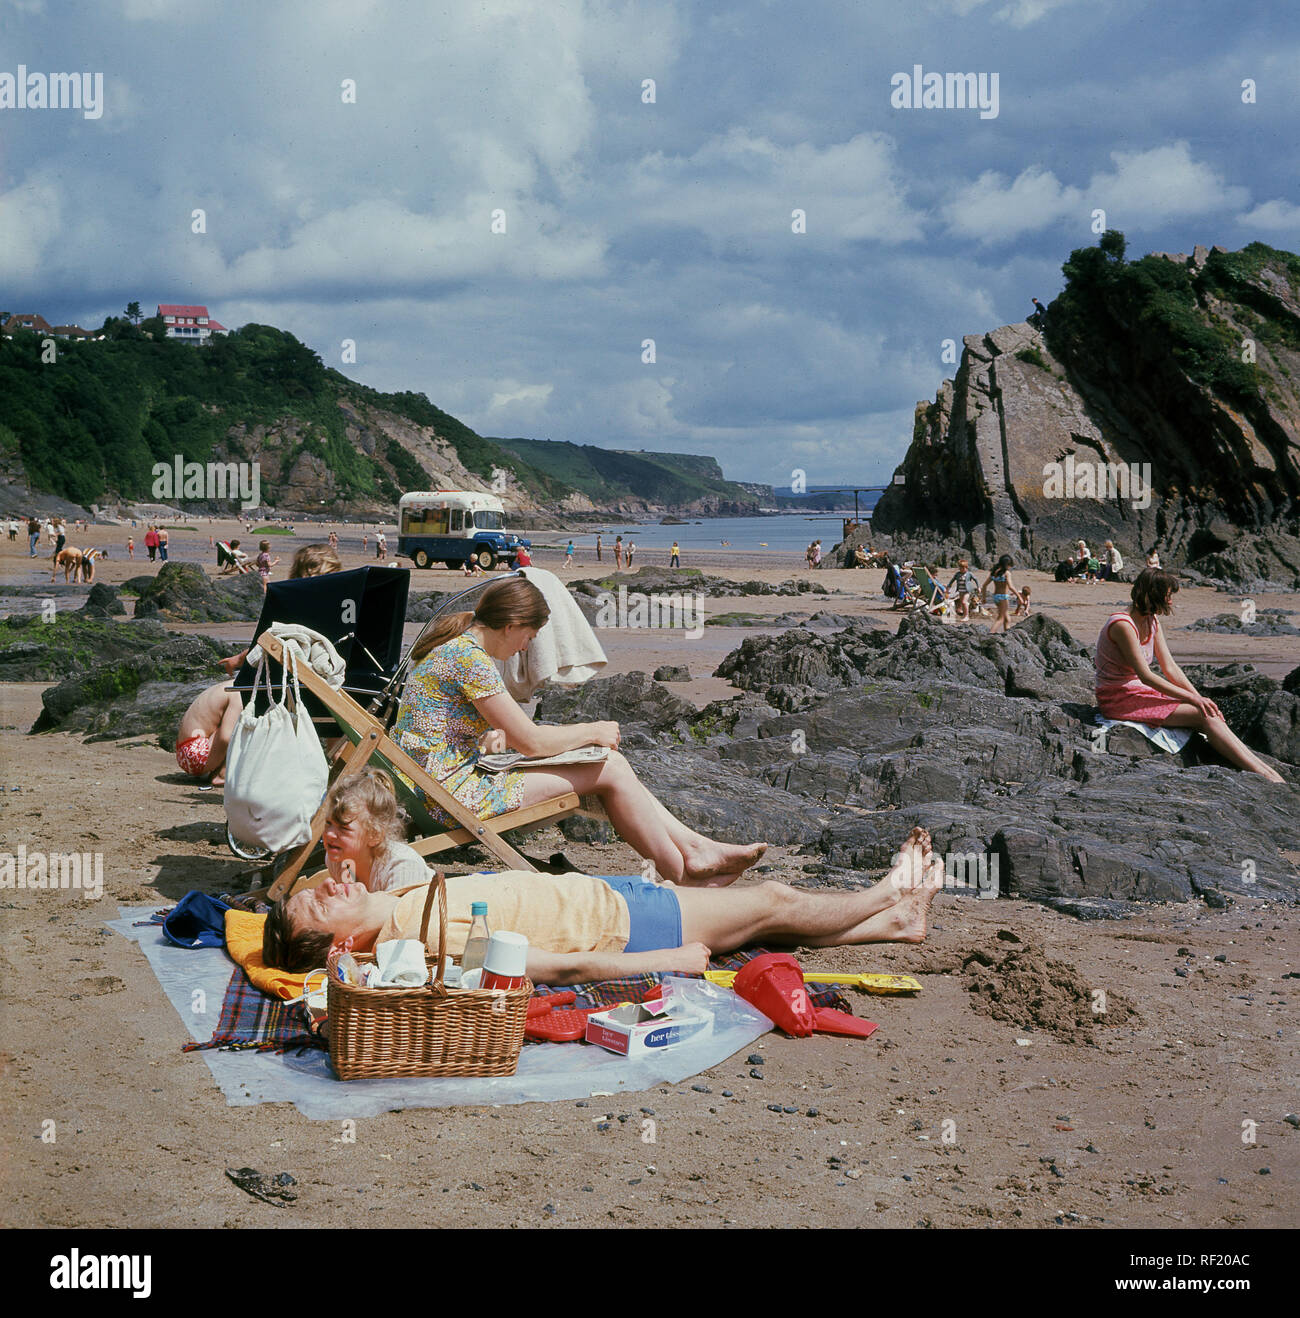 1960s, historical, traditional British family holiday...a day on the beach..a family relaxing on Tenby beach, Wales, UK. The man lies on a rug next to the lunch basket, while his wife sits in a deckchair reading. - Stock Image